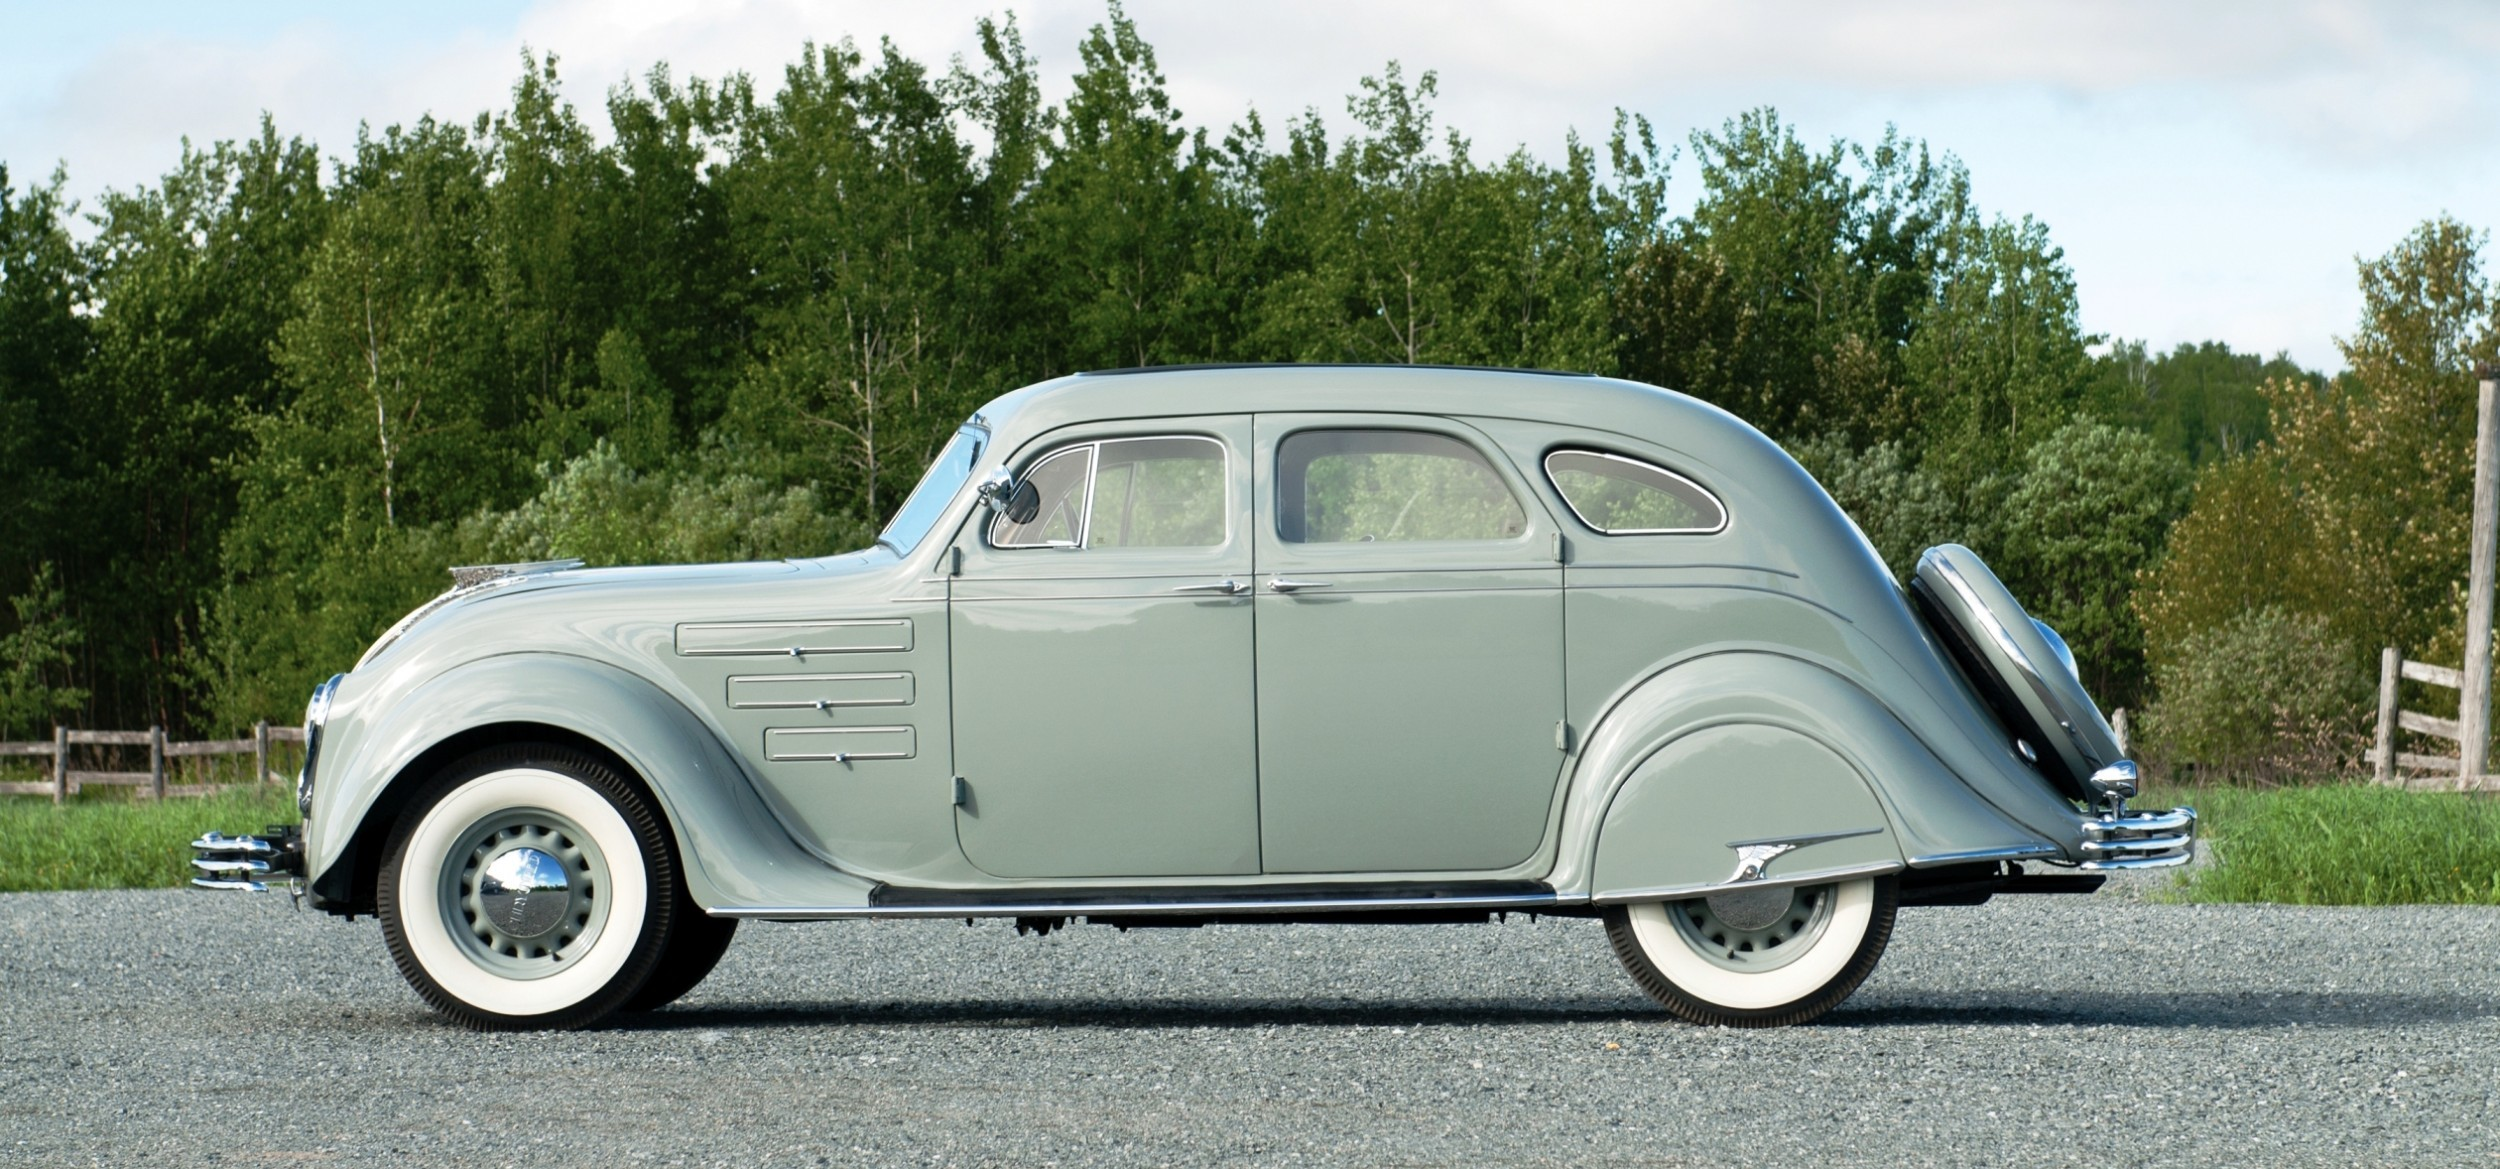 Michigan City Chrysler >> RM Auctions Motor City 2014 Preview - 1934 Chrysler Airflow Eight Sedan Is First Family Cruiser